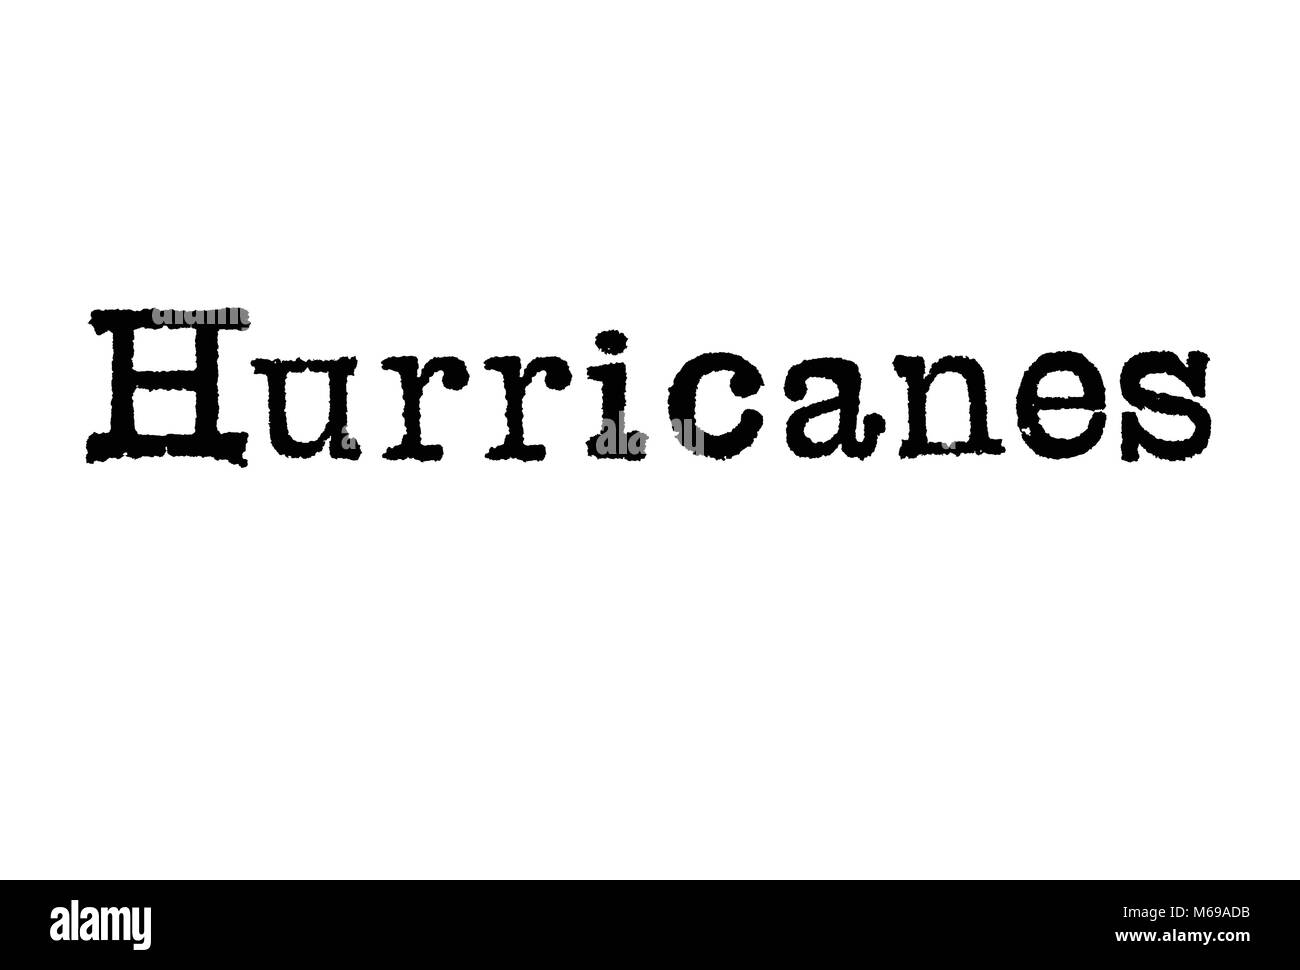 The word Hurricanes from a typewriter on a white background